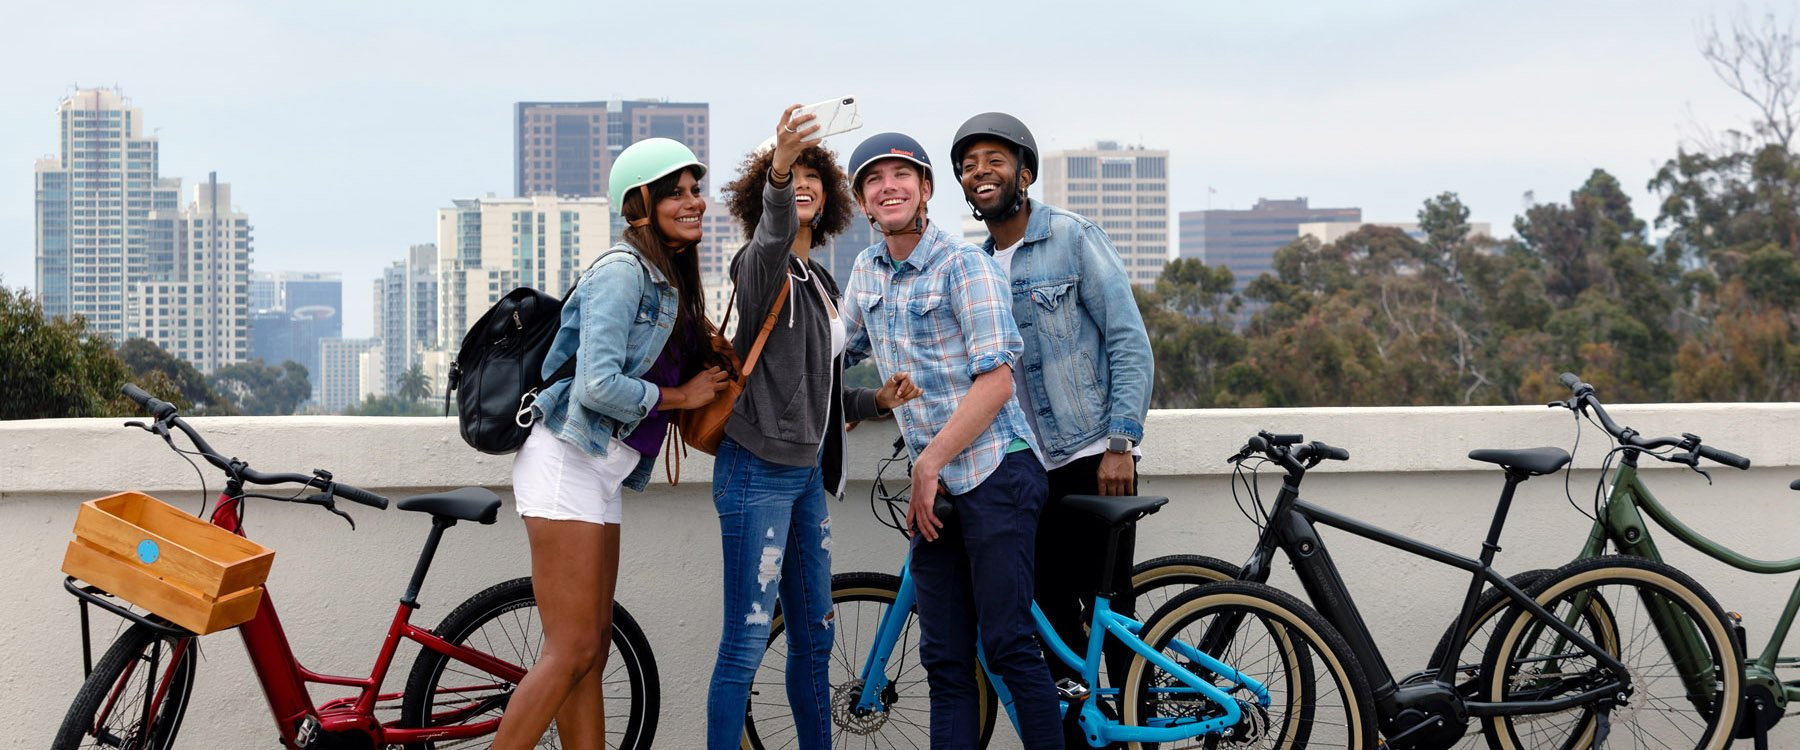 CYCLISTS TAKING A SELFIE